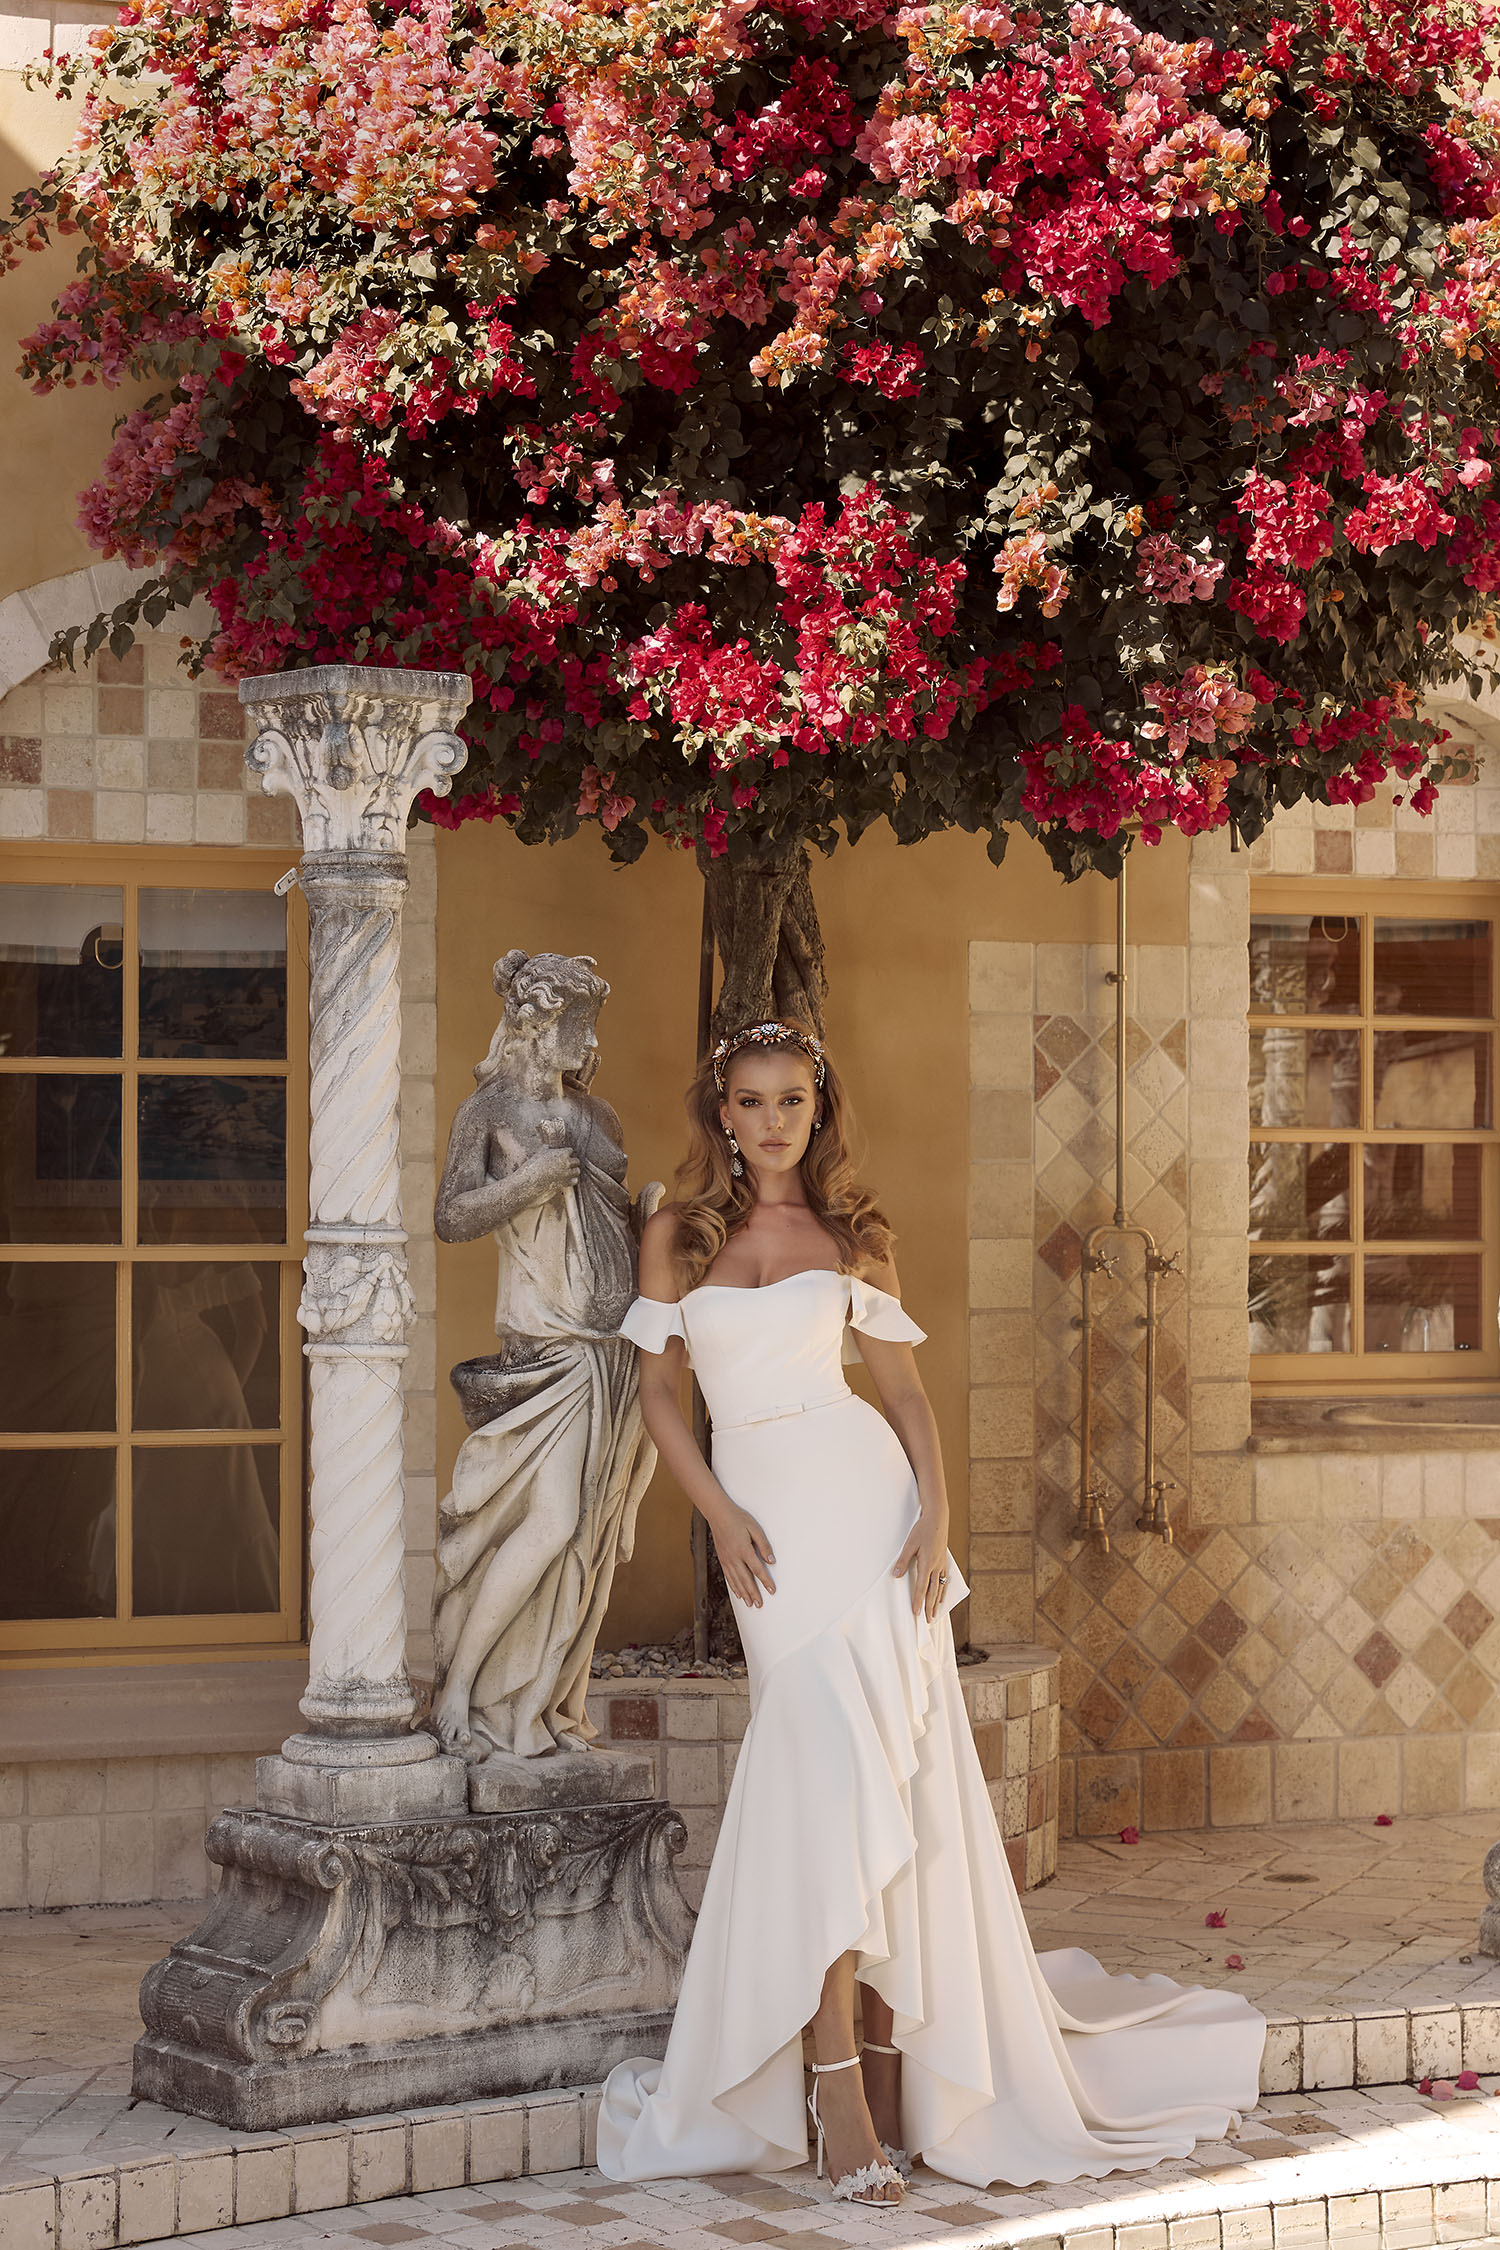 BLAKE ML18012 HI-LOW FIT FLARE SILHOUETTE SEMI-SWEETHEART NECKLINE WITH DETACHABLE BELT AND FLUTTER SLEEVES INCLUDED WITH ZIP CLOSURE FINISH WEDDING DRESS MADI LANE BRIDAL1